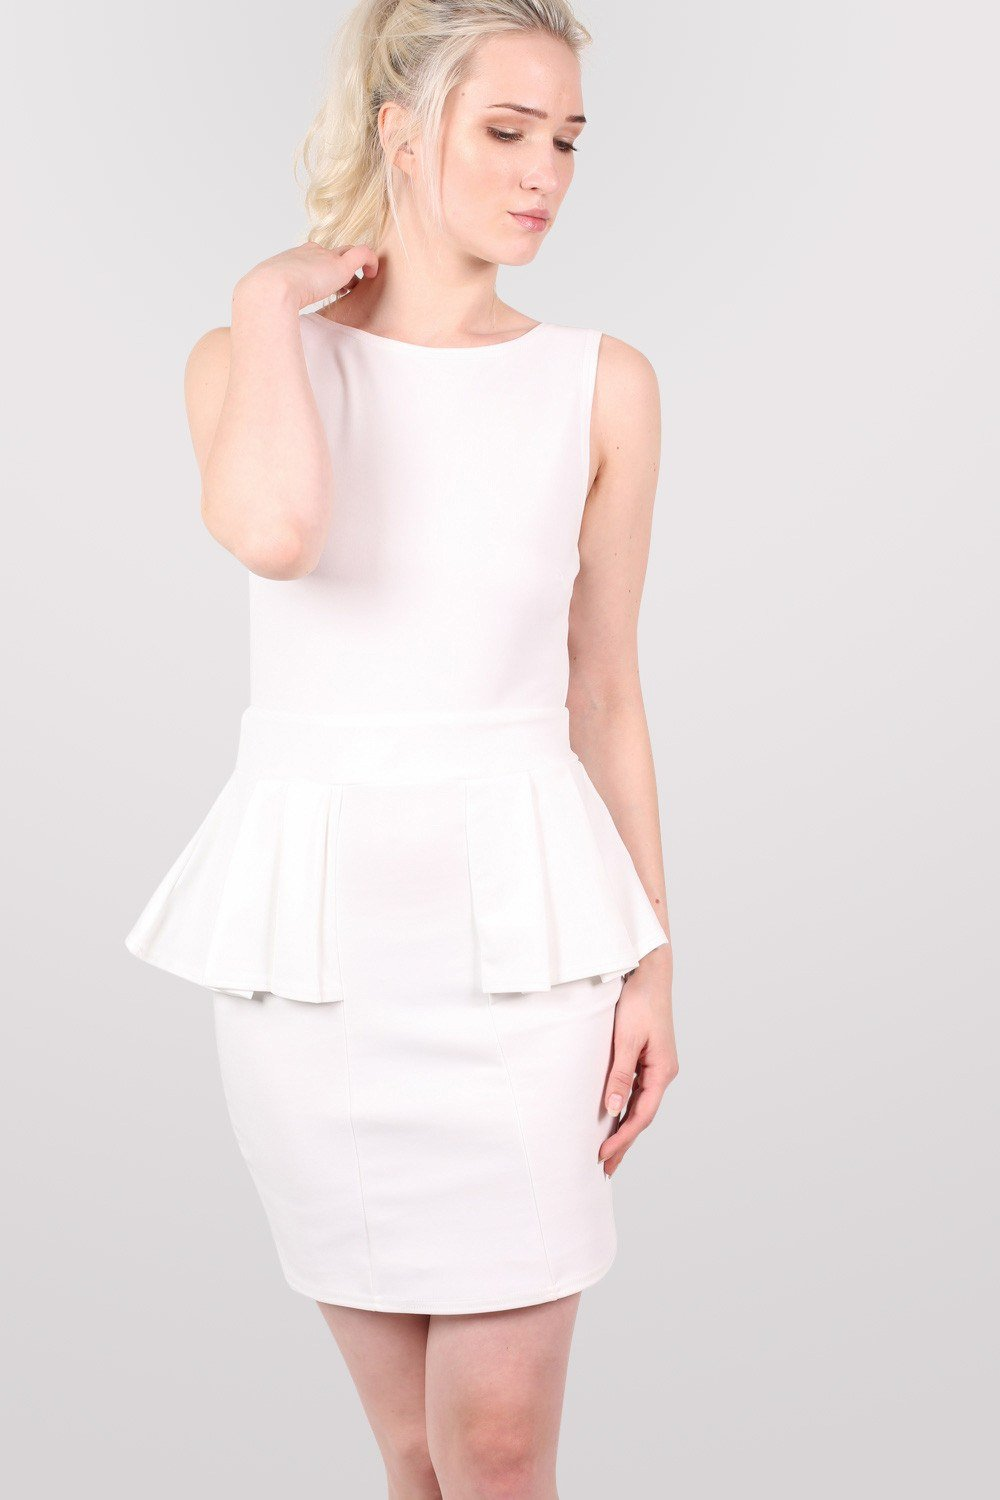 Low Back Peplum Dress in White 0